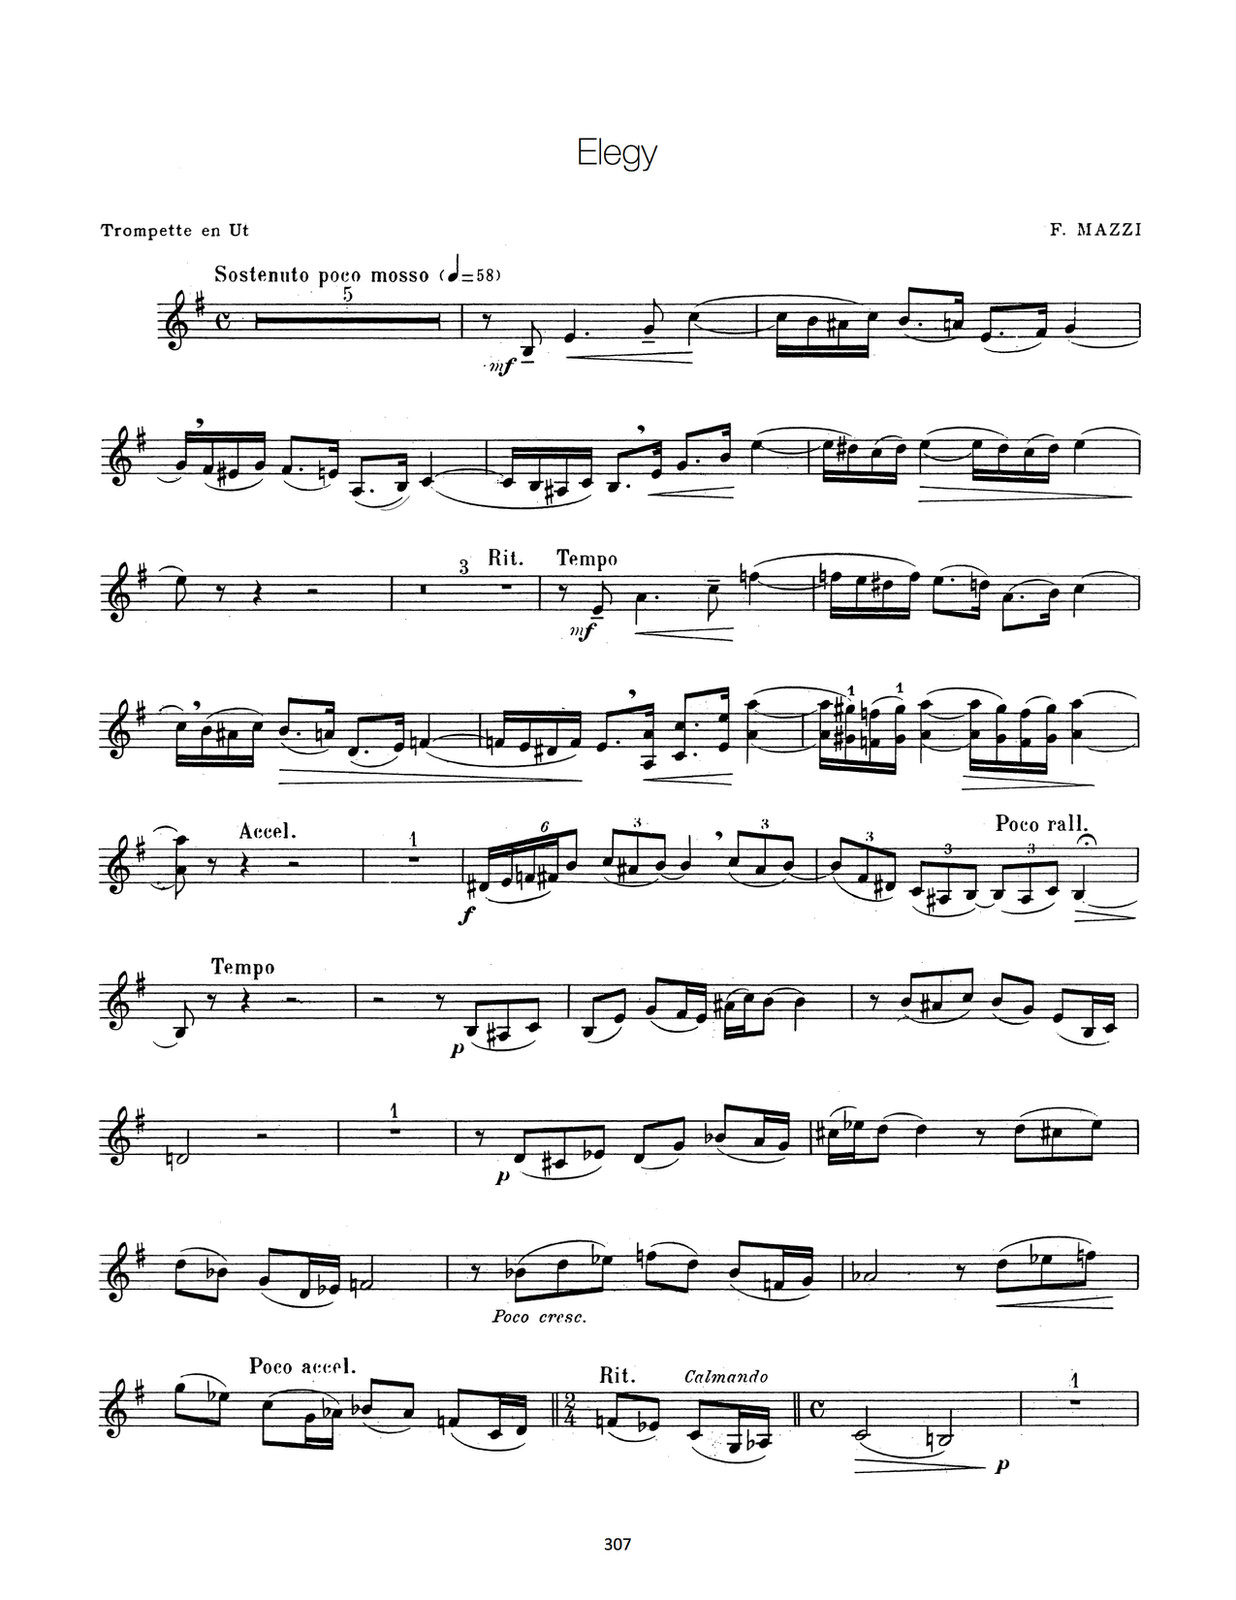 Franquin, Complete Method for Modern Trumpet 9